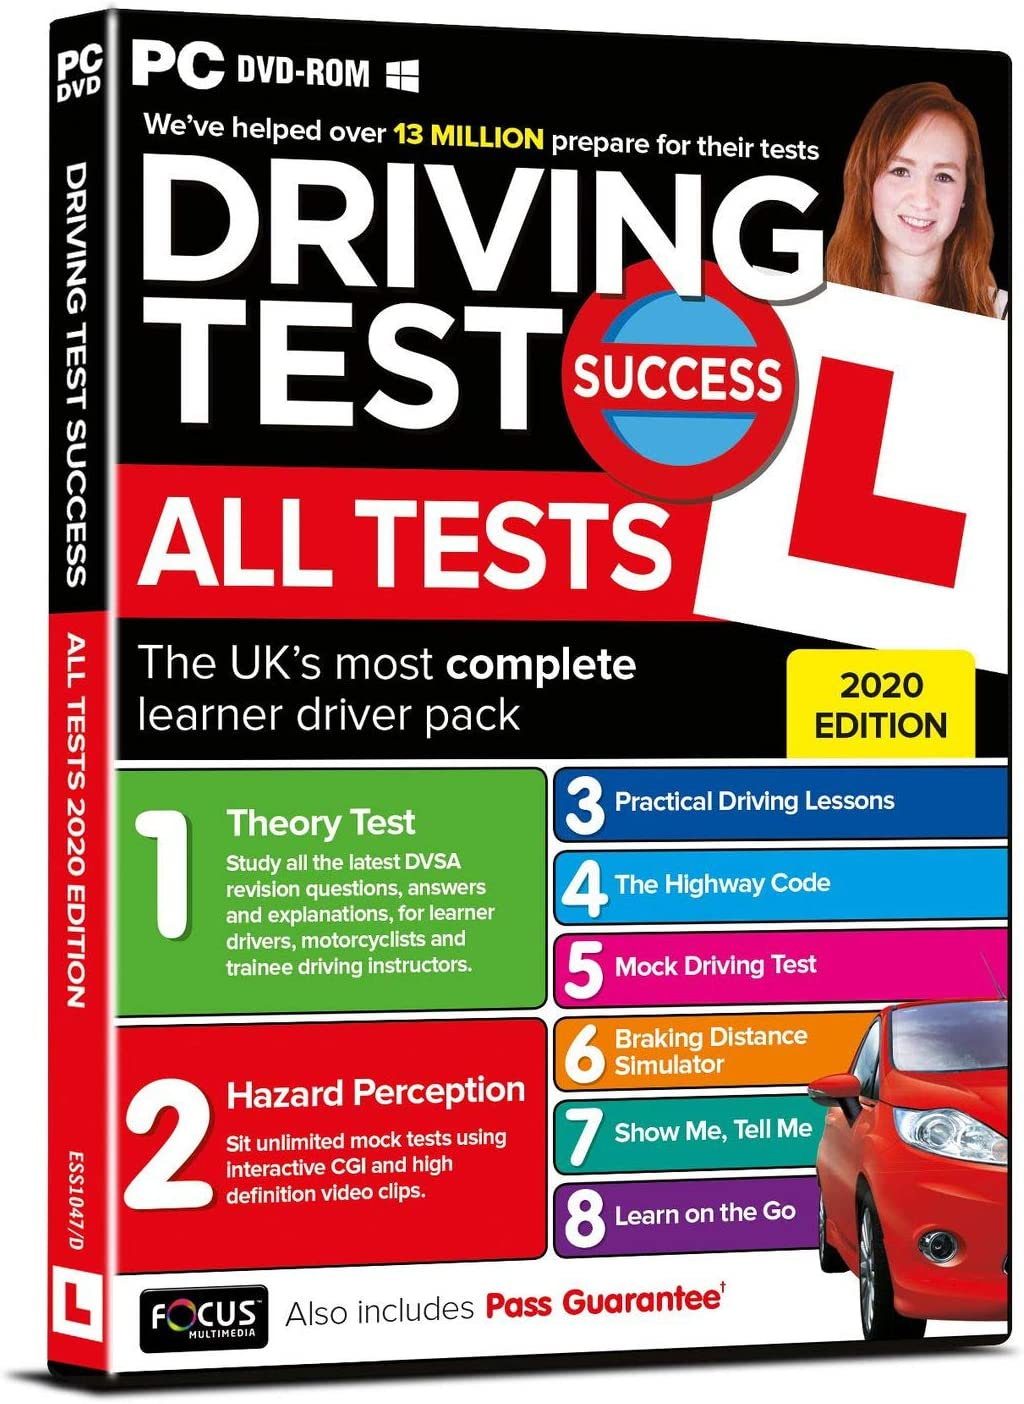 Theory Test Papers and Driving Test PC//DVD's for 2 The Learner Driver Gift Pack